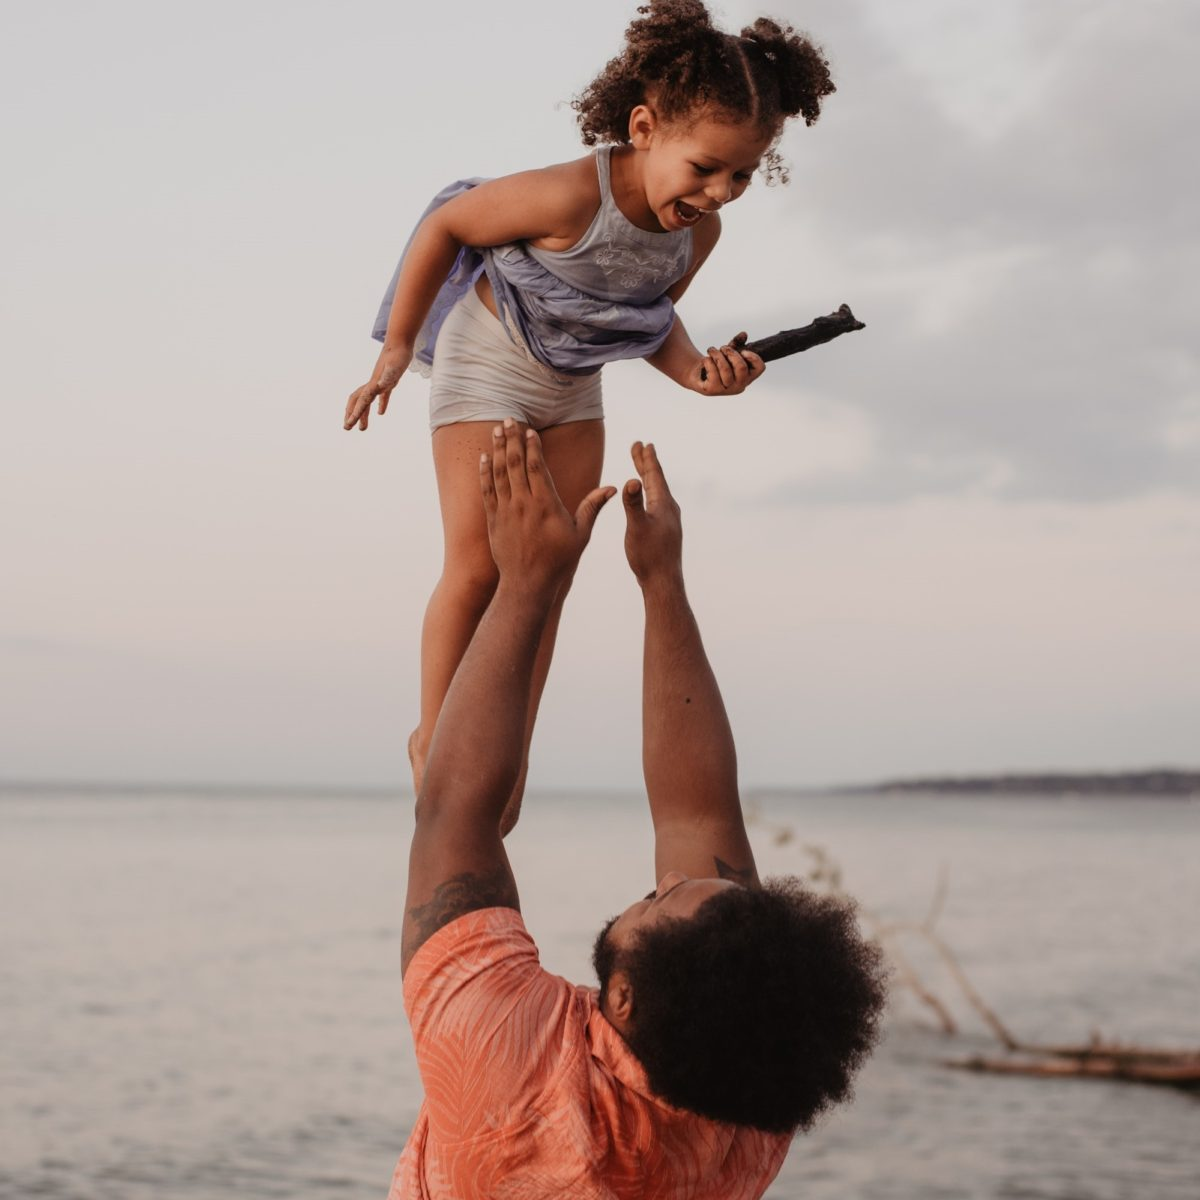 Can I adopt a child as a single parent?